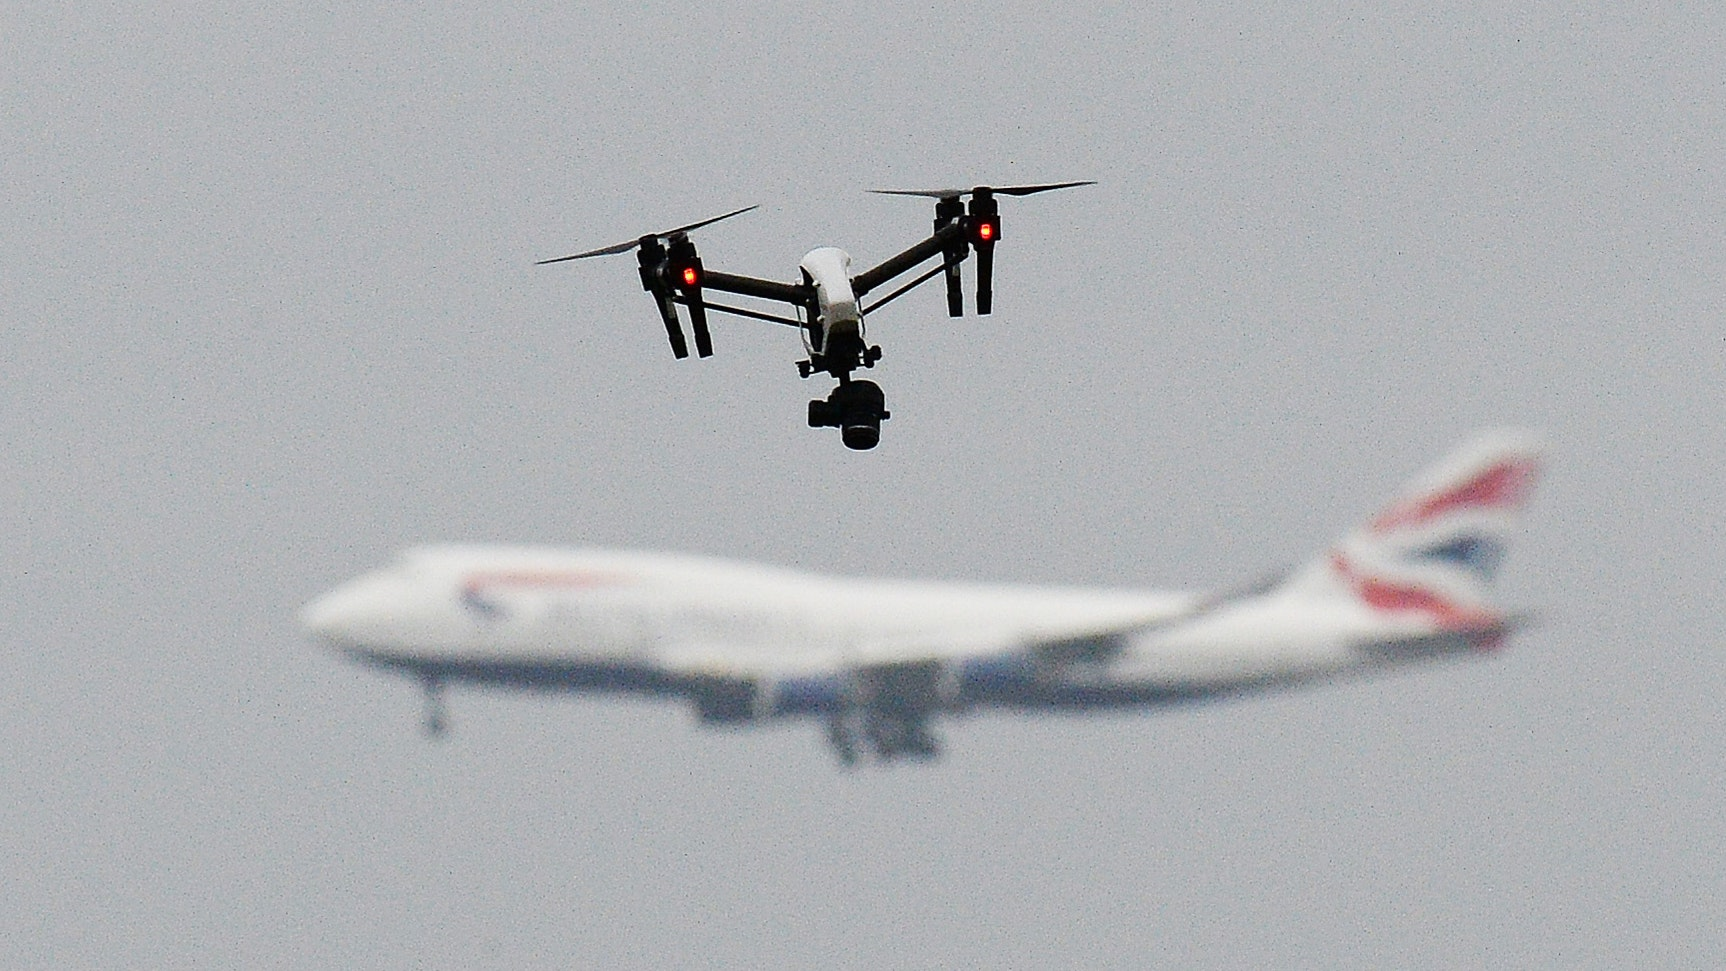 Britain extends drone exclusion zone around airports, gives police new powers